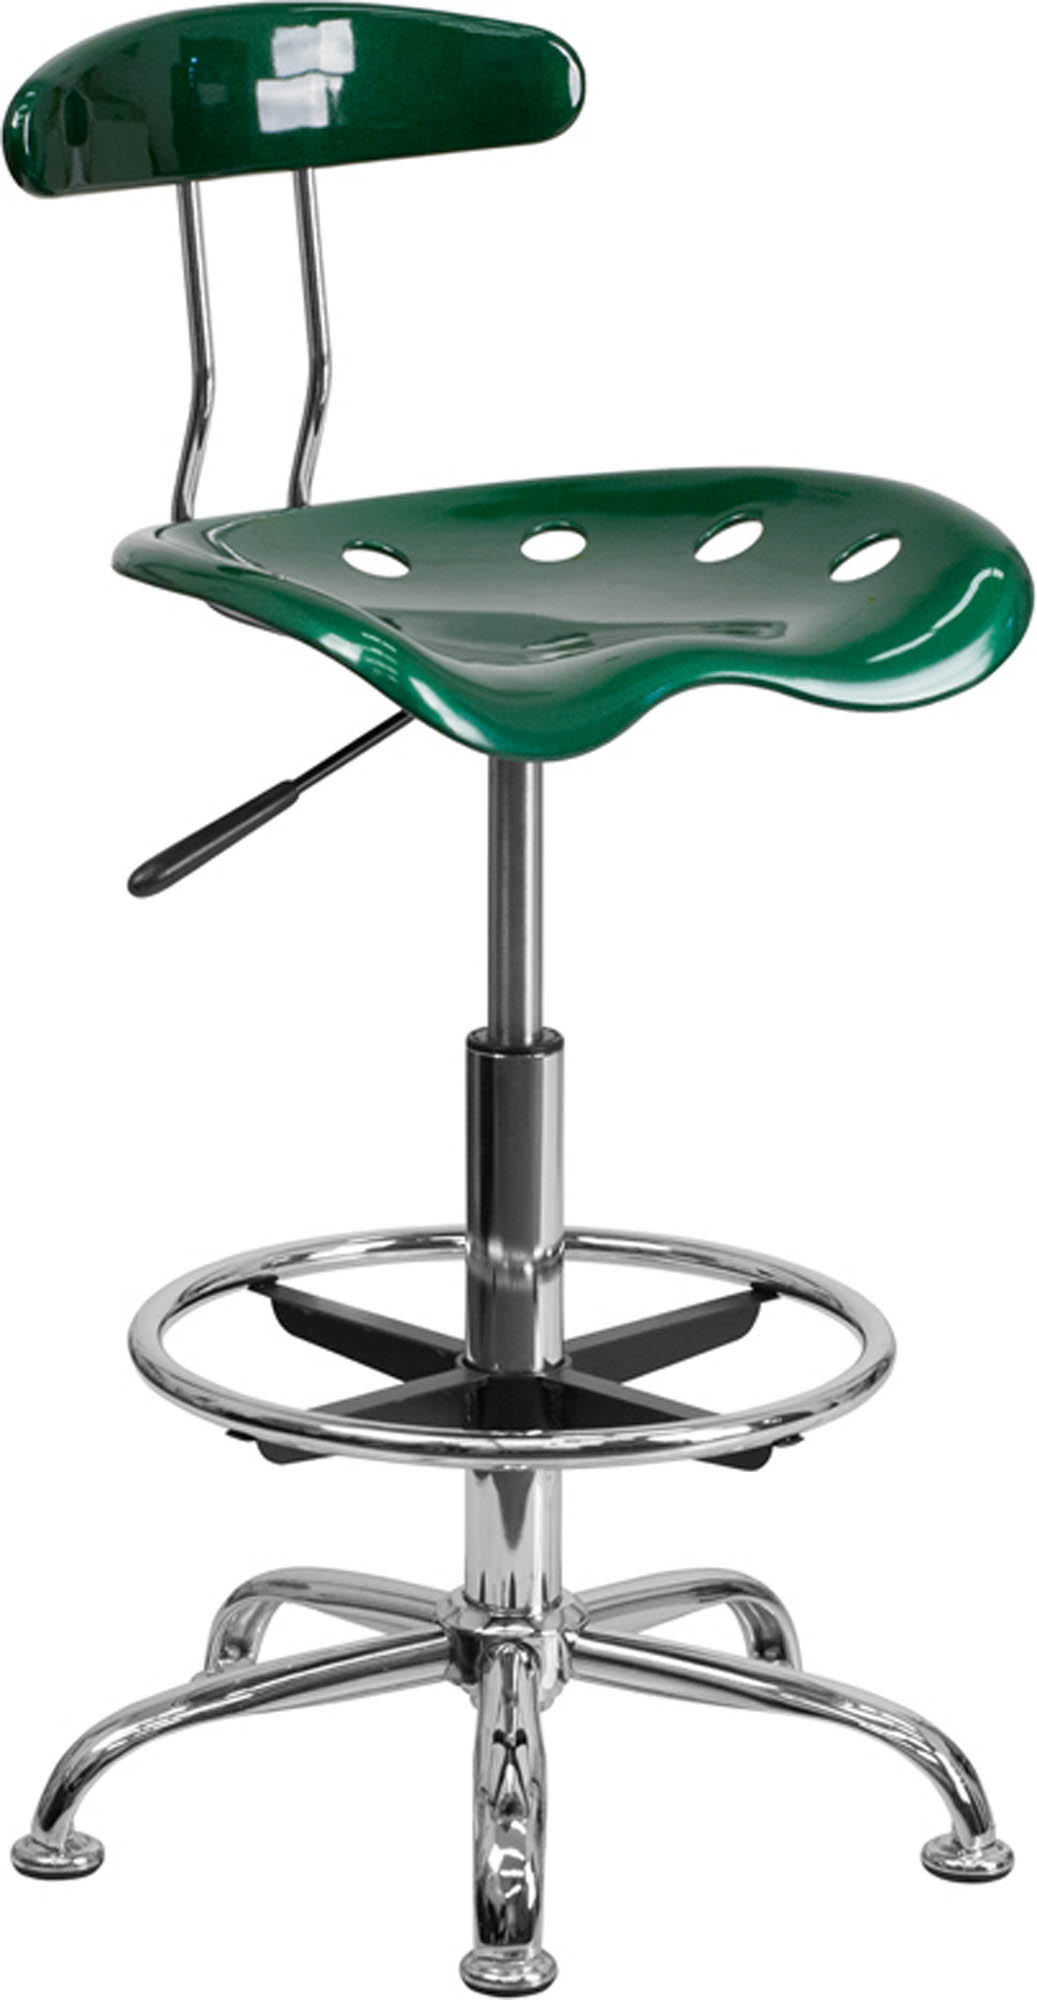 Offex LF-215-GREEN-GG Vibrant Green and Chrome Drafting Stool with Tractor Seat